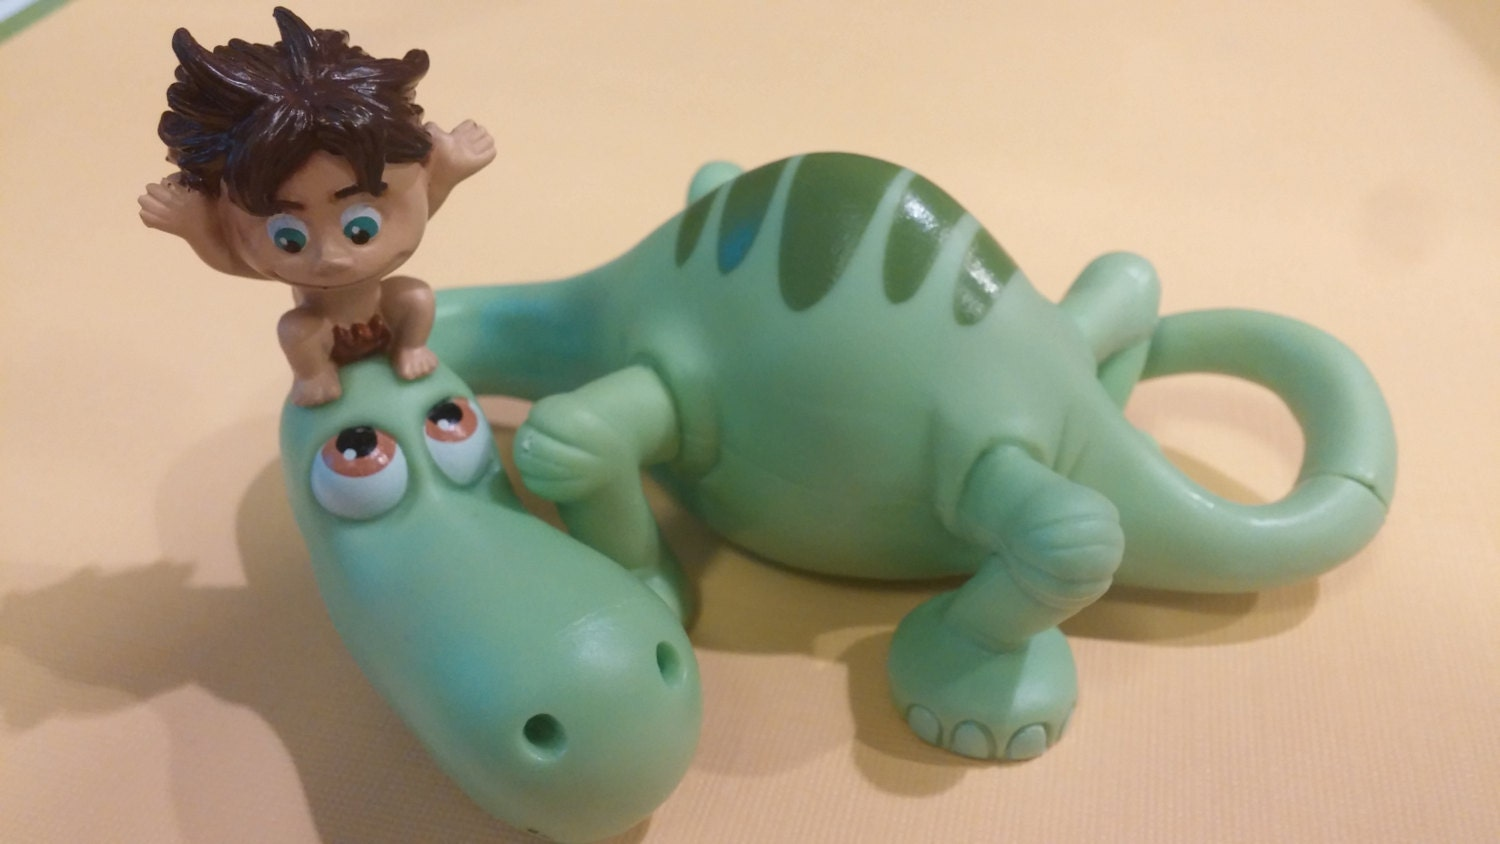 Dinosaur Cake Decorations Toppers : THE GOOD DINOSAUR cake topper Disney Pixar Arlo and Spot